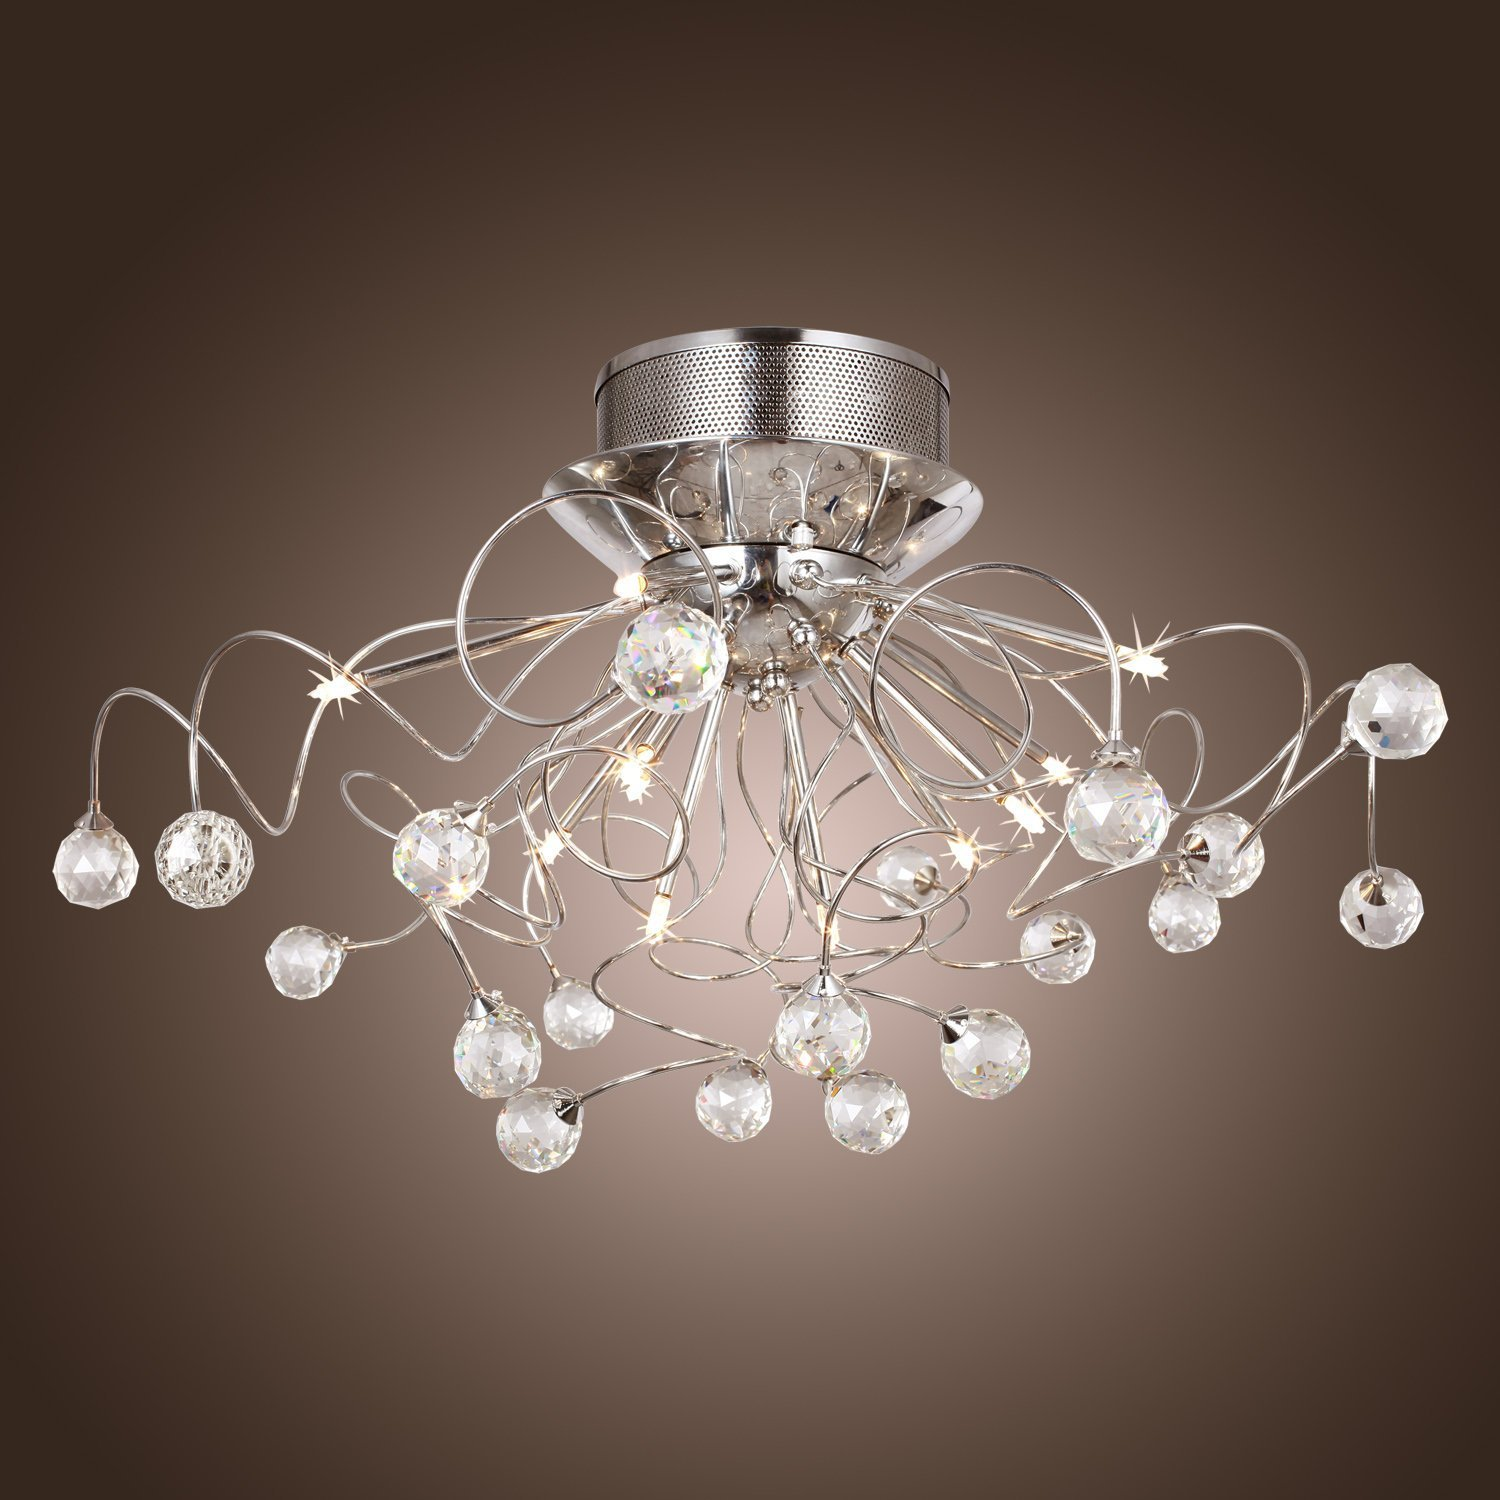 modern ideas crystal chandeliers lighting on chandelier about best amazing lights pinterest